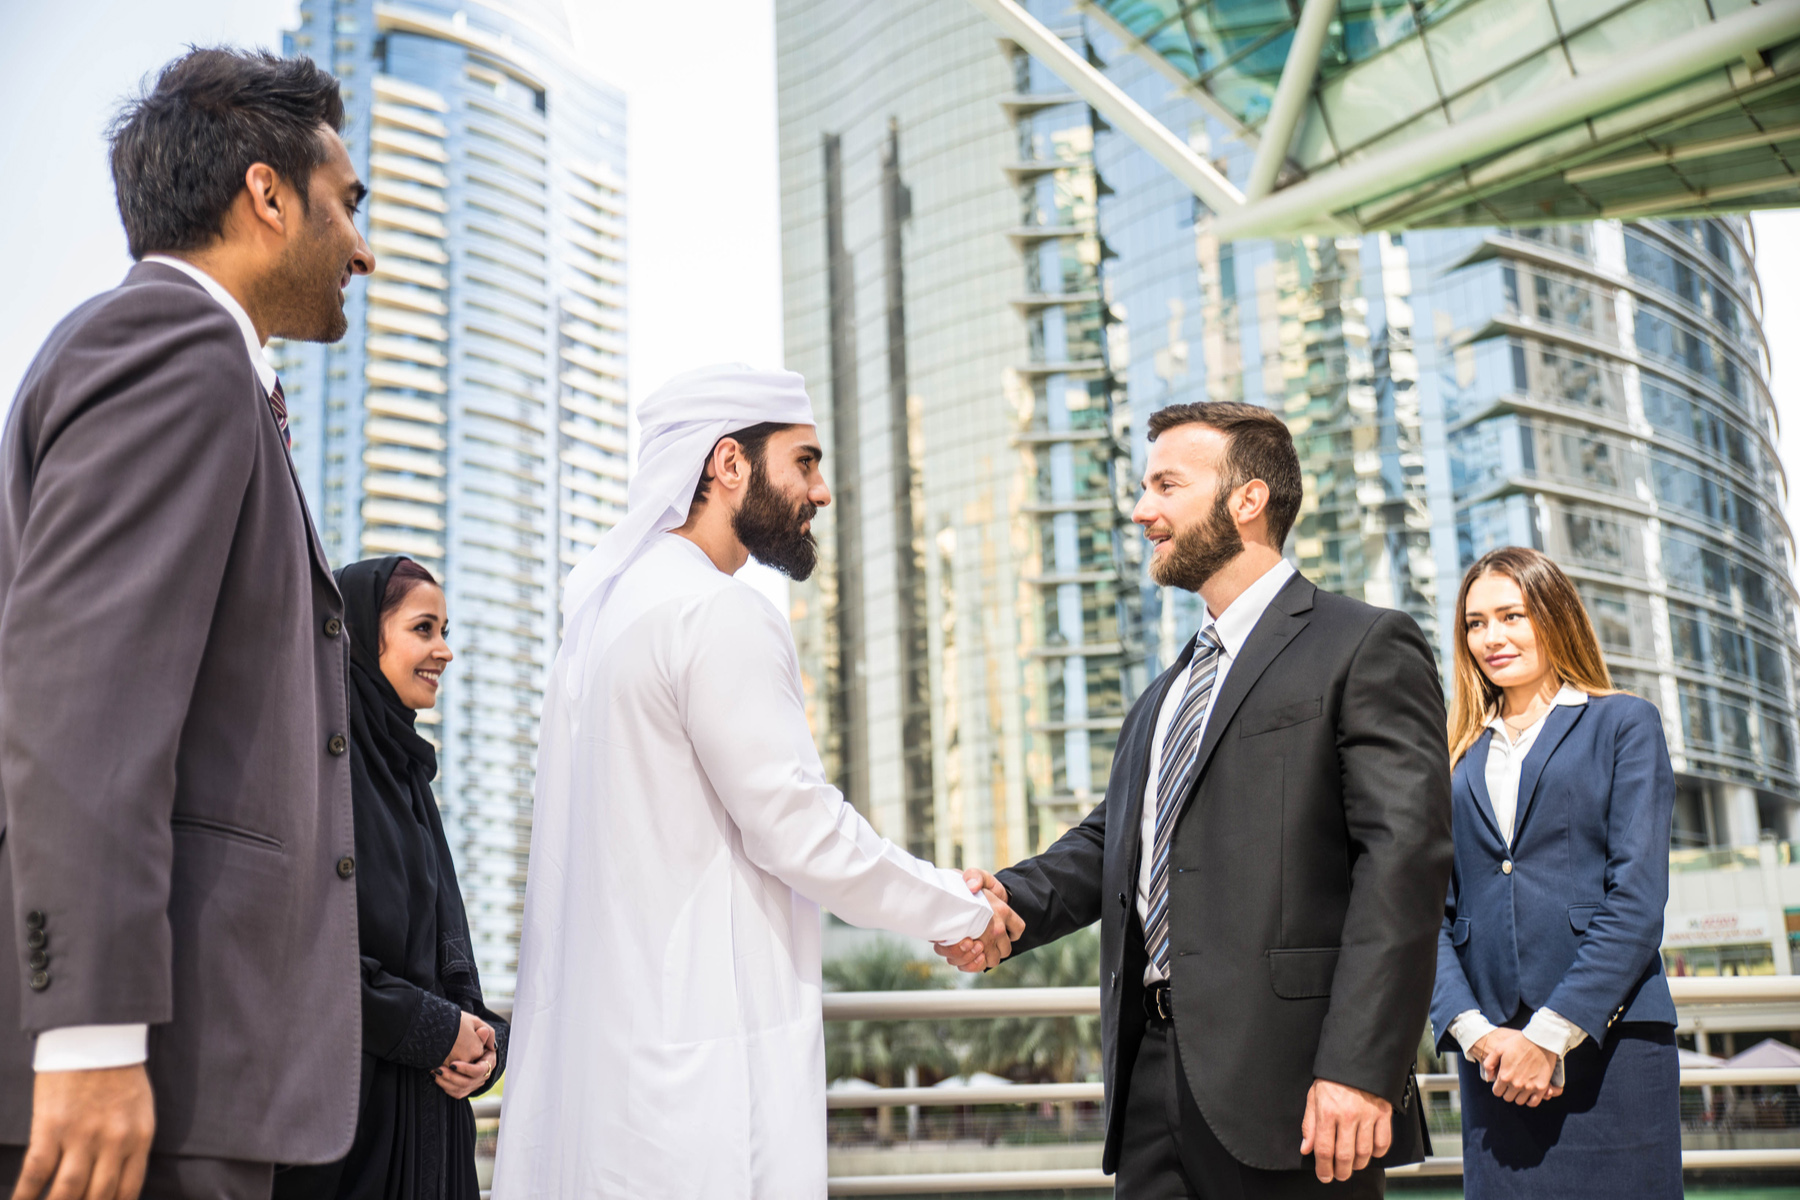 Creating-a-Business-in-the-UAE How to Start Your Company in Dubai and Get Personal Residence